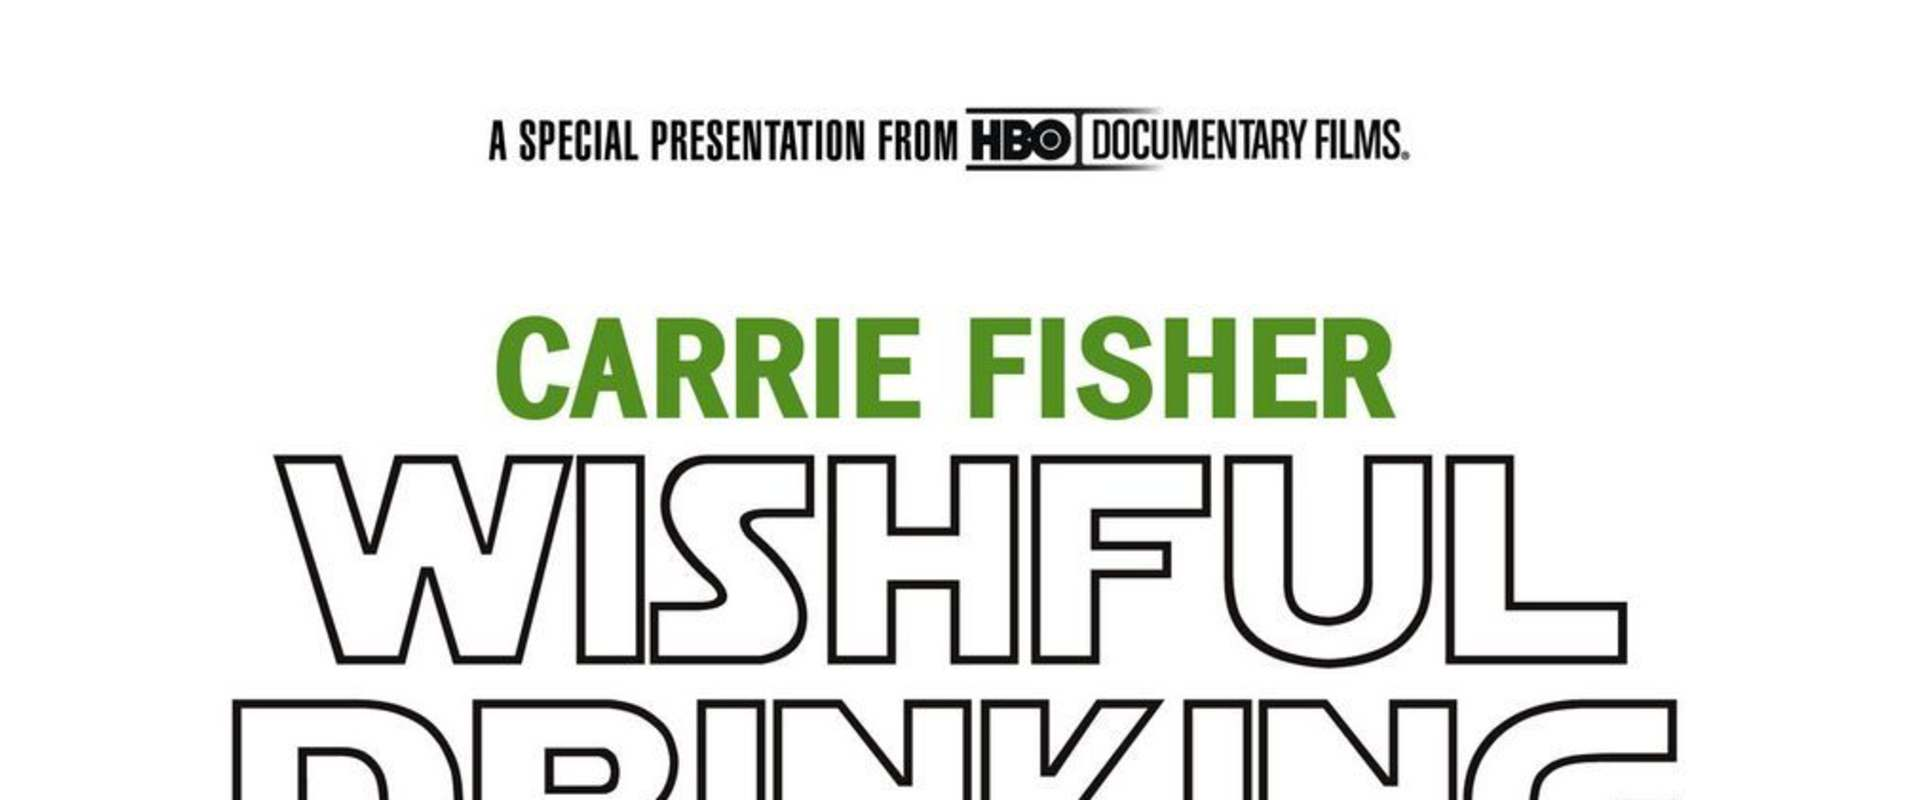 Carrie Fisher: Wishful Drinking background 2